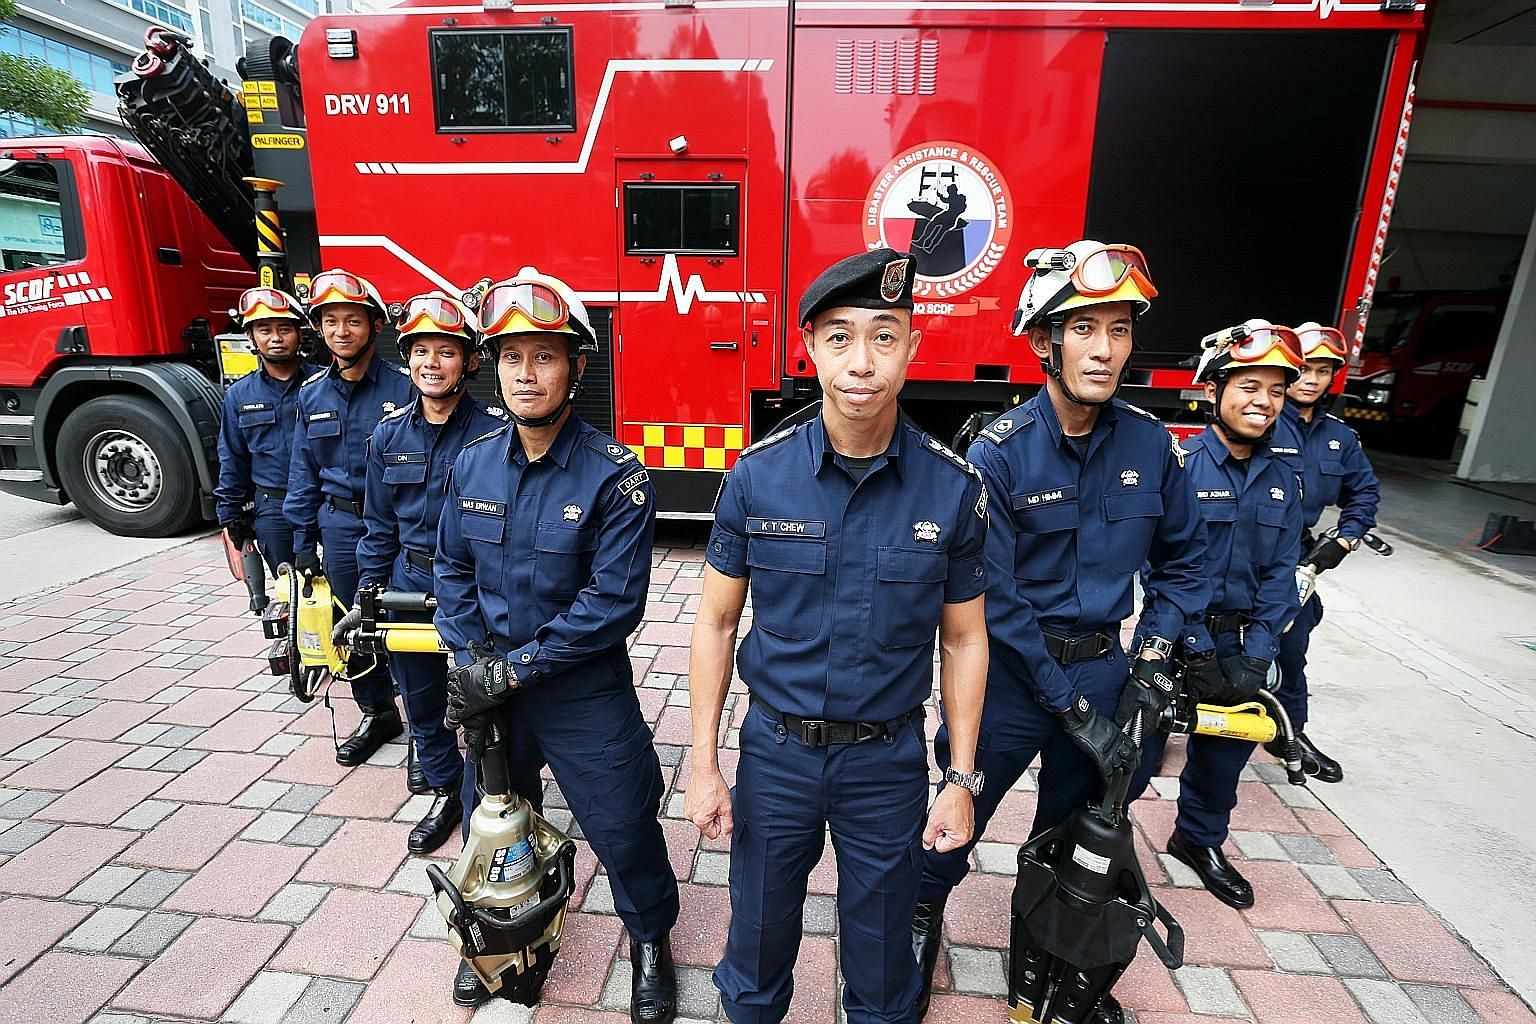 Colonel Chew Keng Tok (in front) led this eight-man Disaster Assistance and Rescue Team, including Sergeant Bahiyudin Abas (third from left) and Warrant Officer Muhammad Himmi Ibrahim (third from right), in a complex 3½-hour rescue mission last Thur